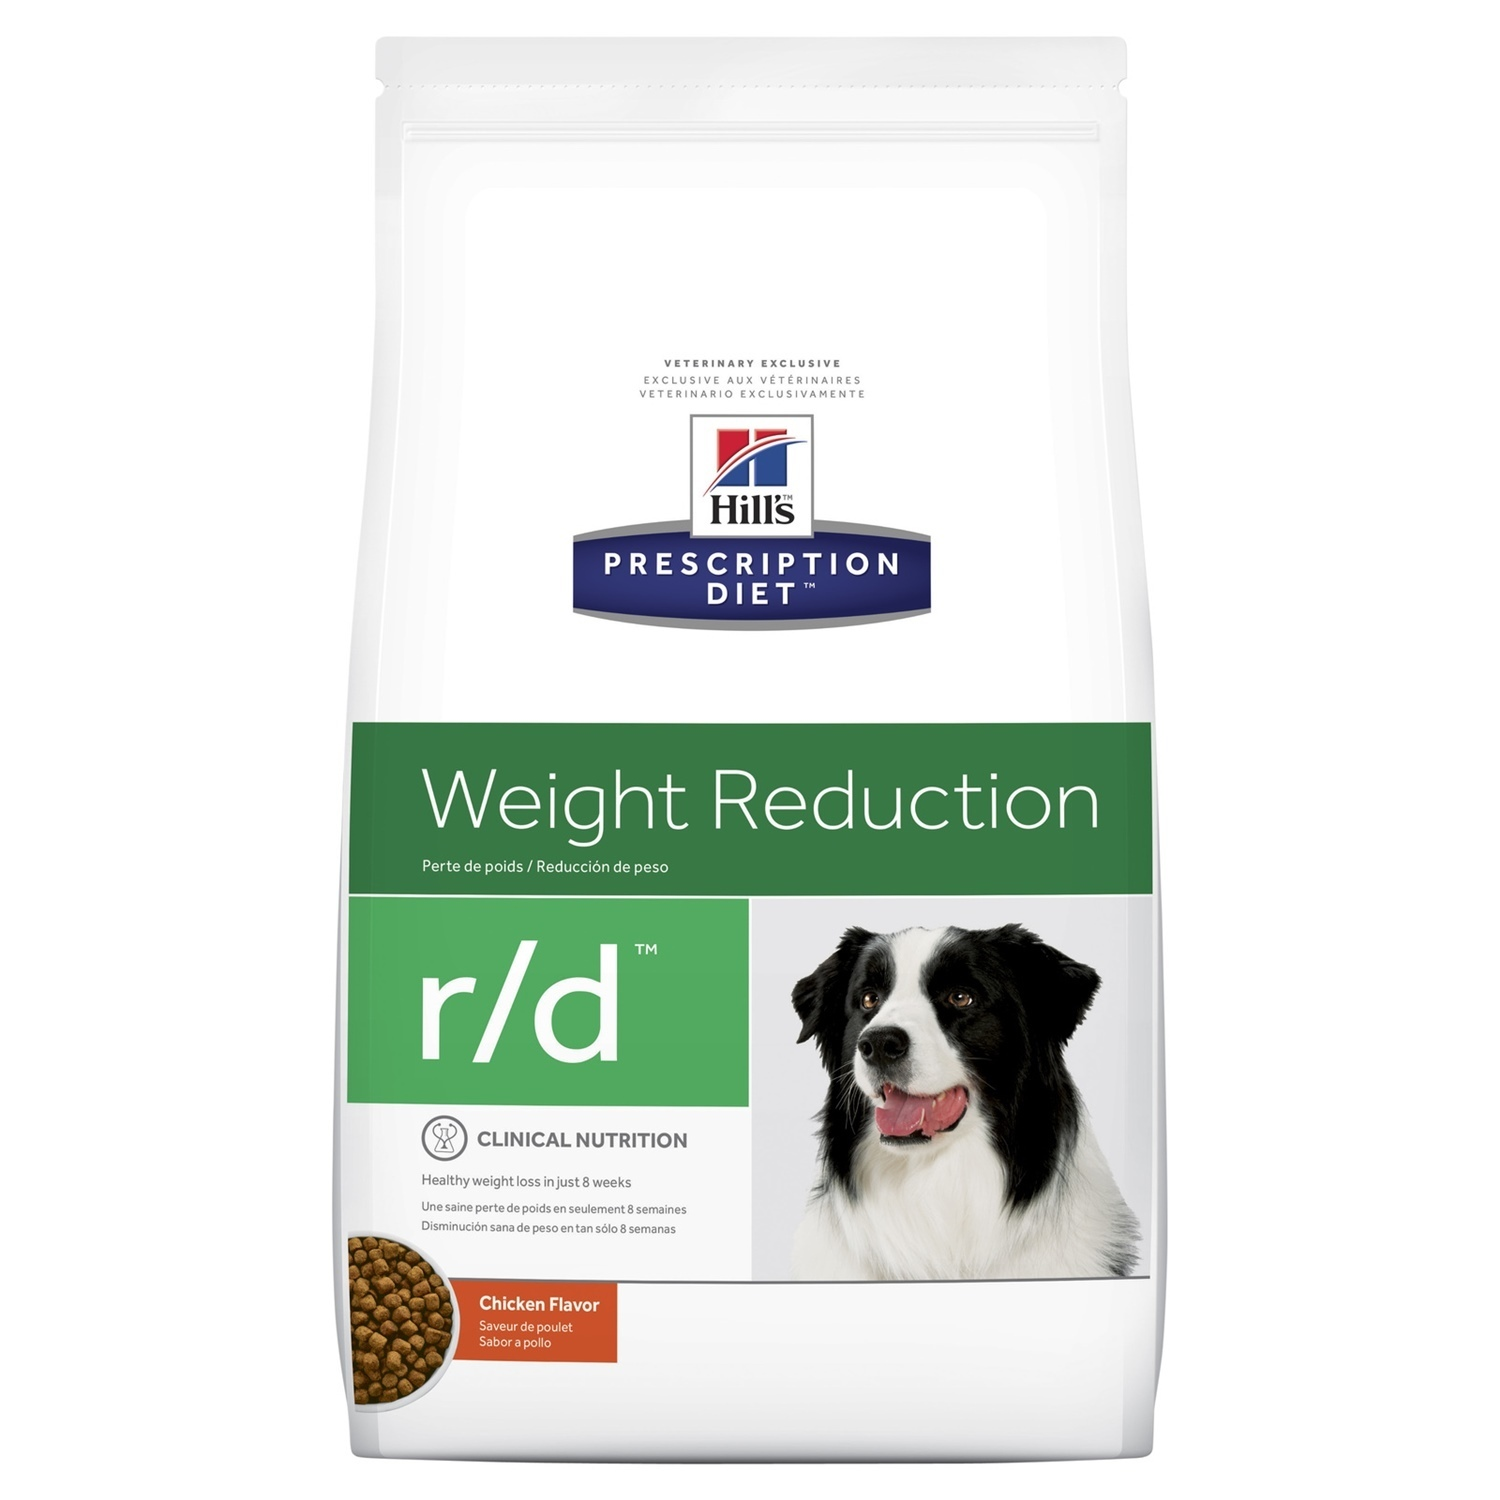 How to feed a dog dry food 93